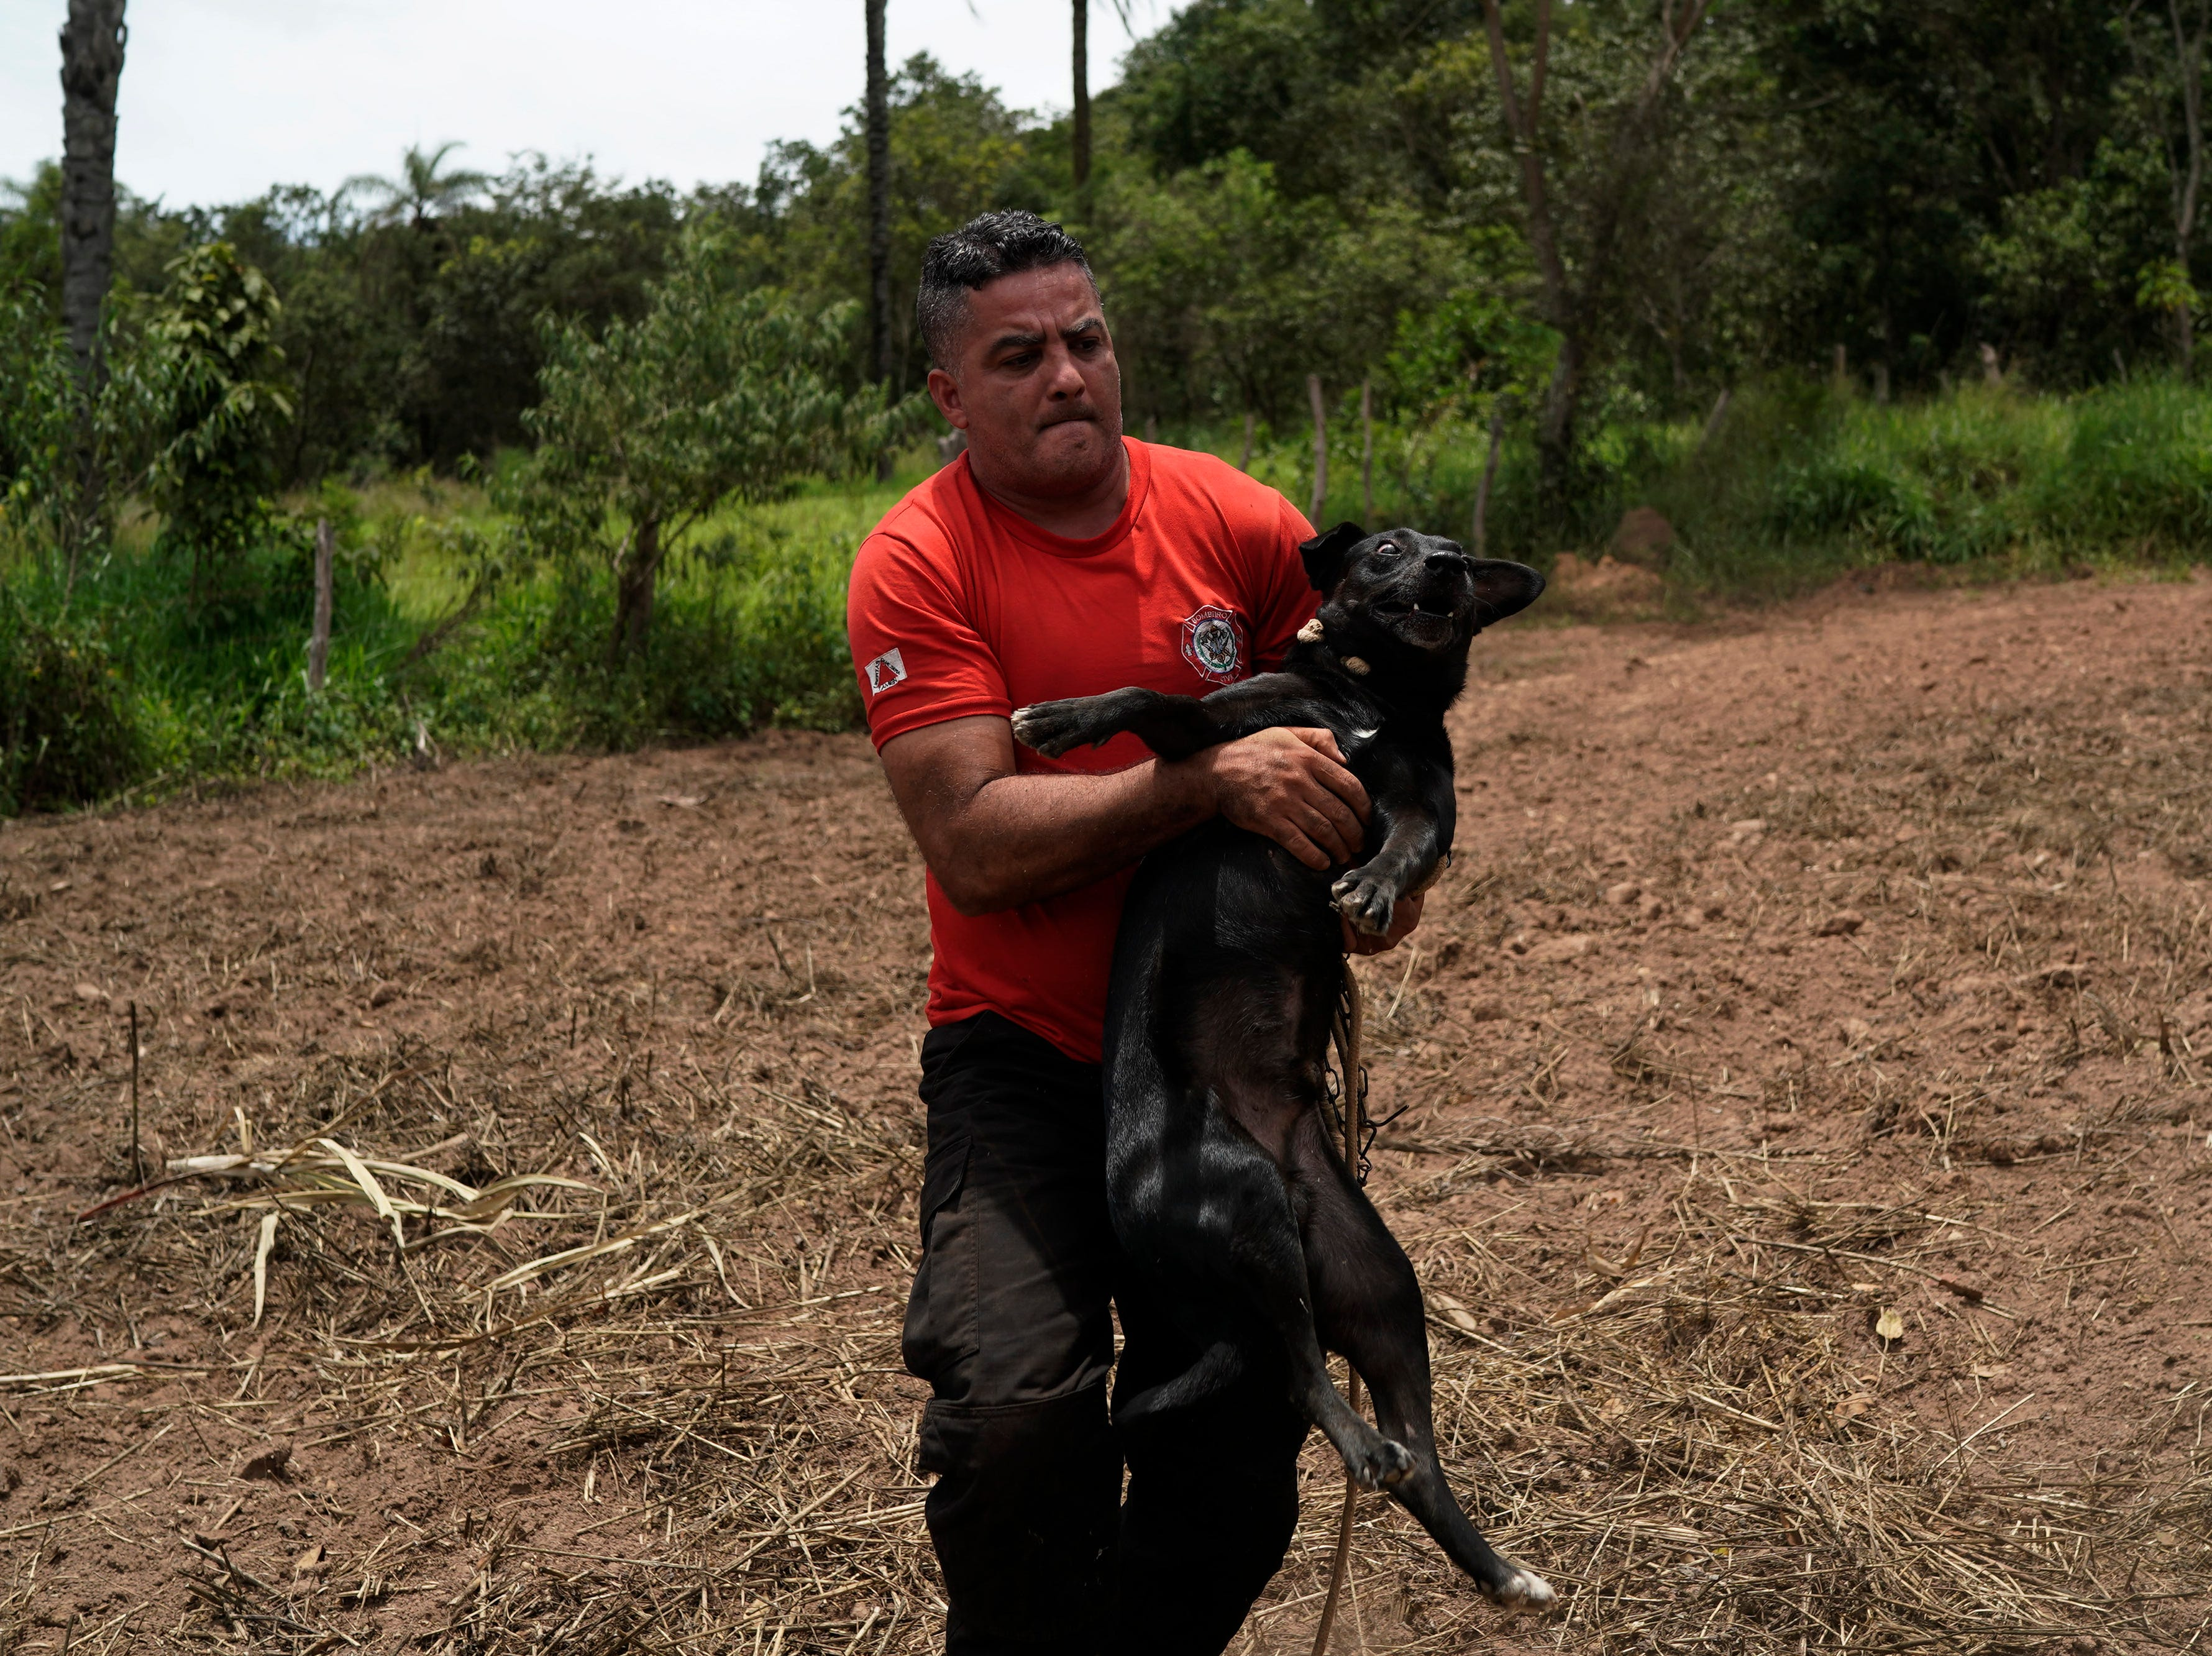 Civil firefighter Leoncio Valverdes carries a dog found tied to a home as he rescues him from a flooded area two days after a dam collapse in Brumadinho, Brazil, Sunday, Jan. 27, 2019.